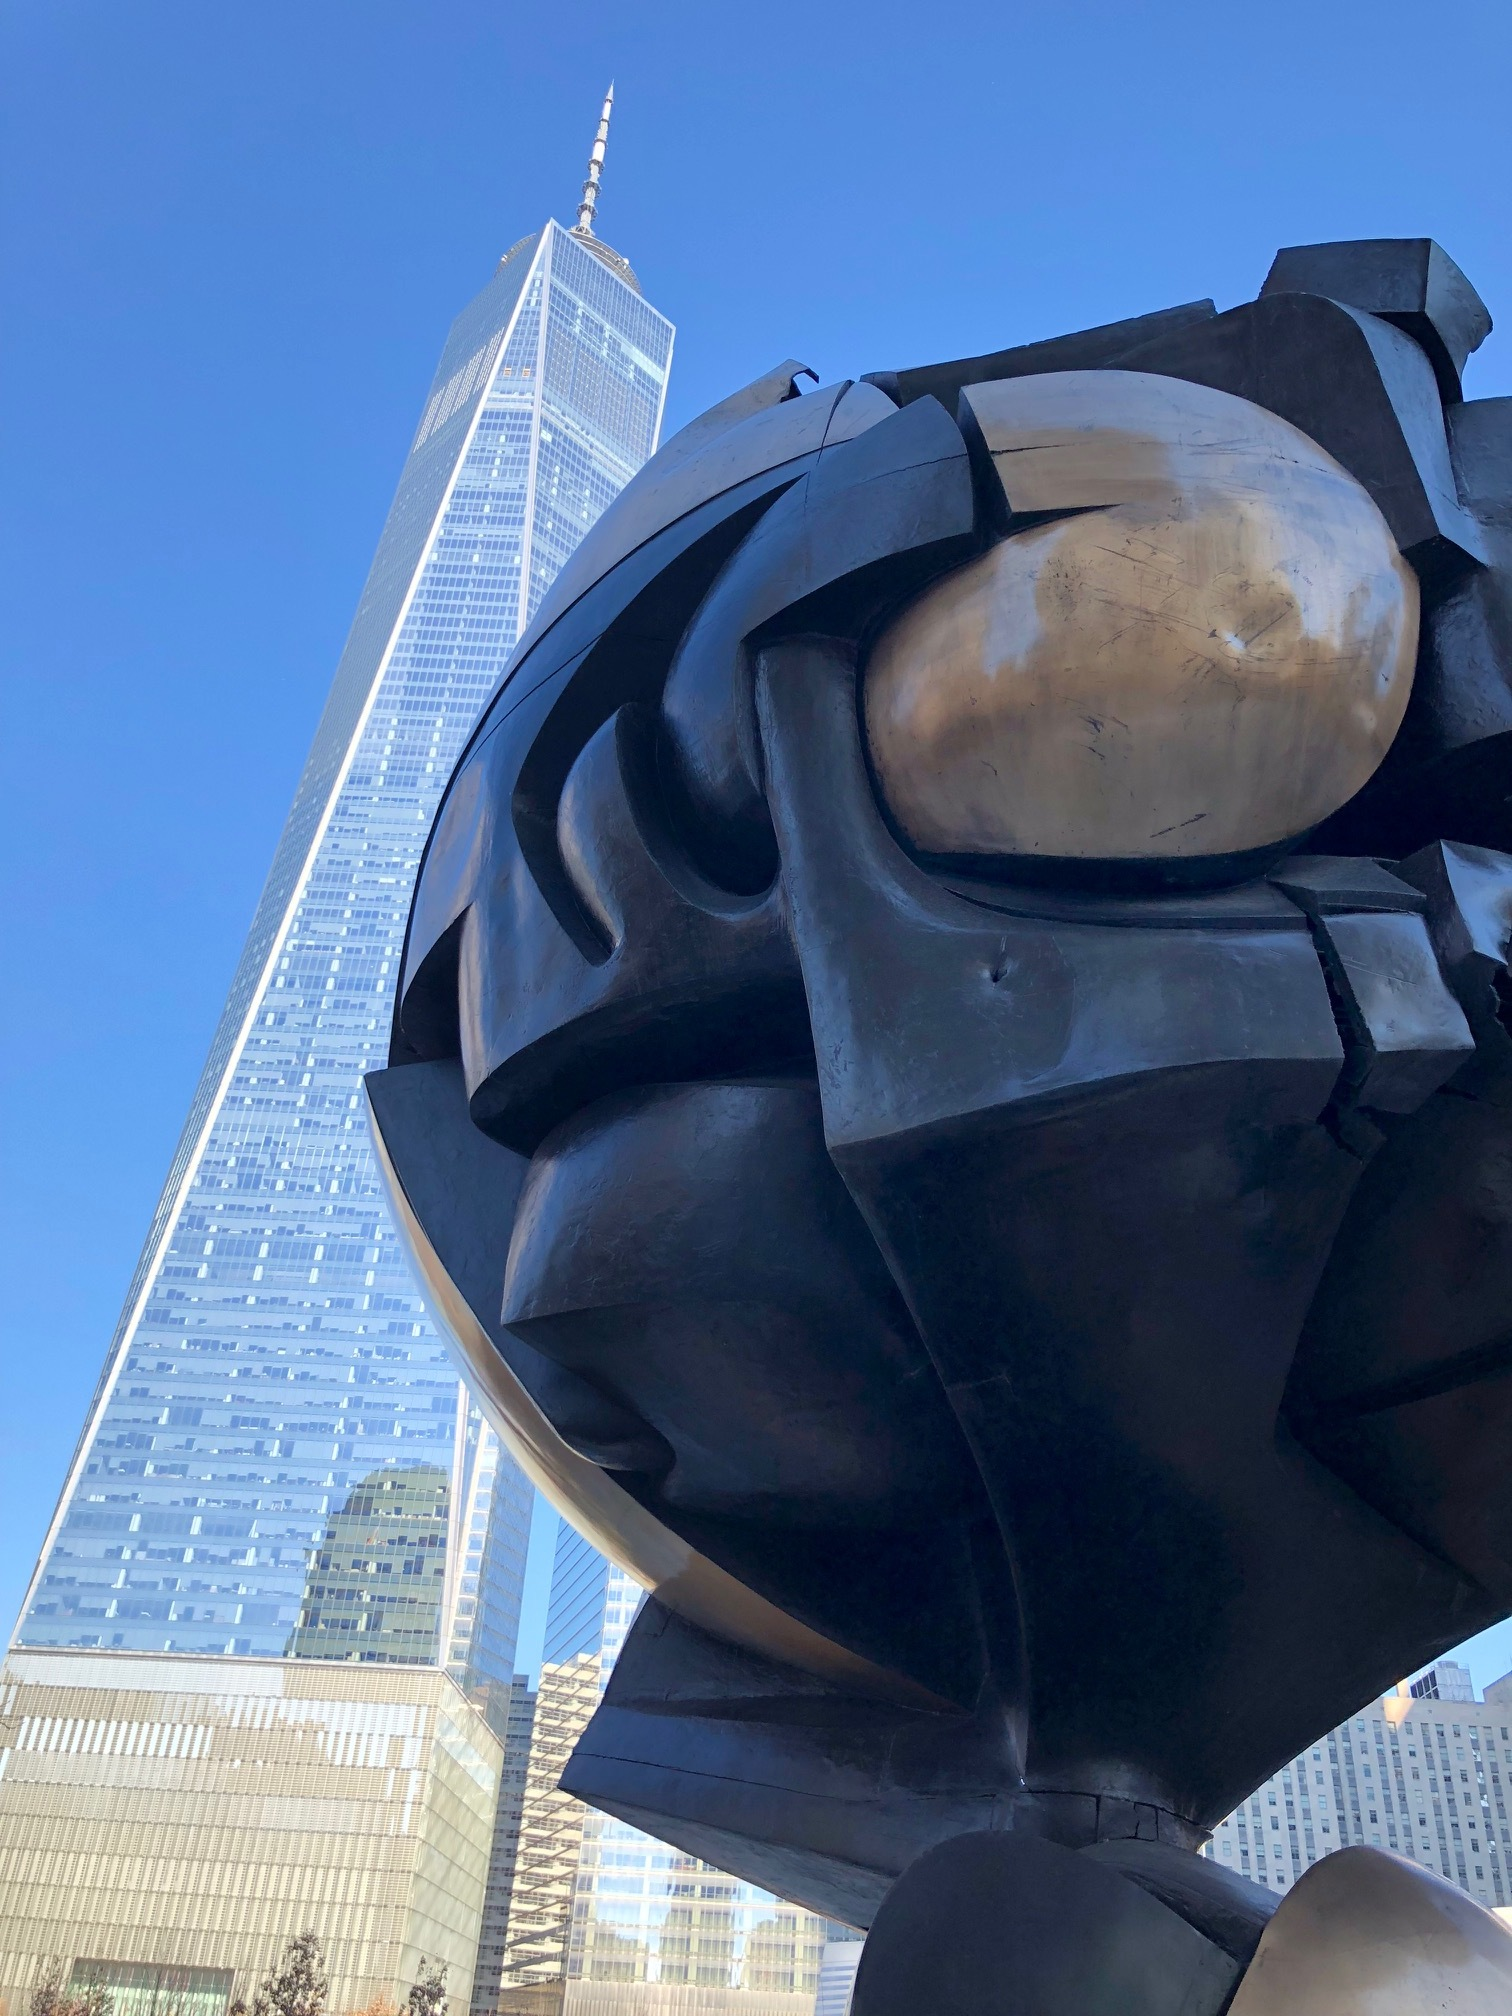 This sculpture was in the plaza at the original World Trade Center. It was pulled from the rubble after 9-11, and added to this park overlooking the site.